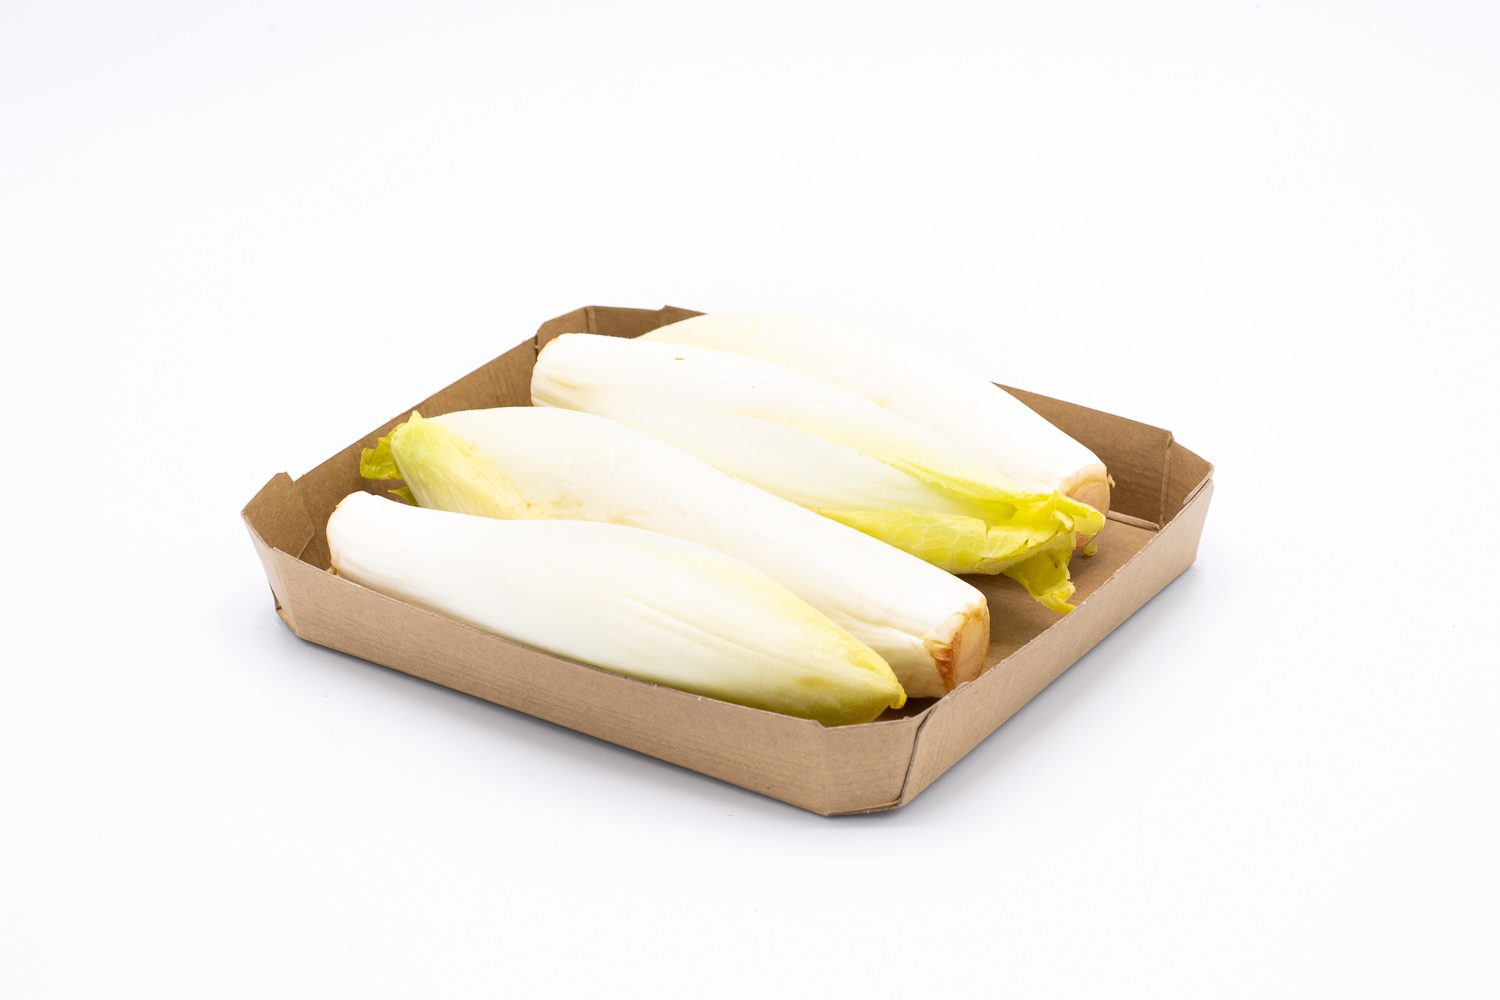 Solidus-Solutions-cardboard-punnet-vegetables-chicory